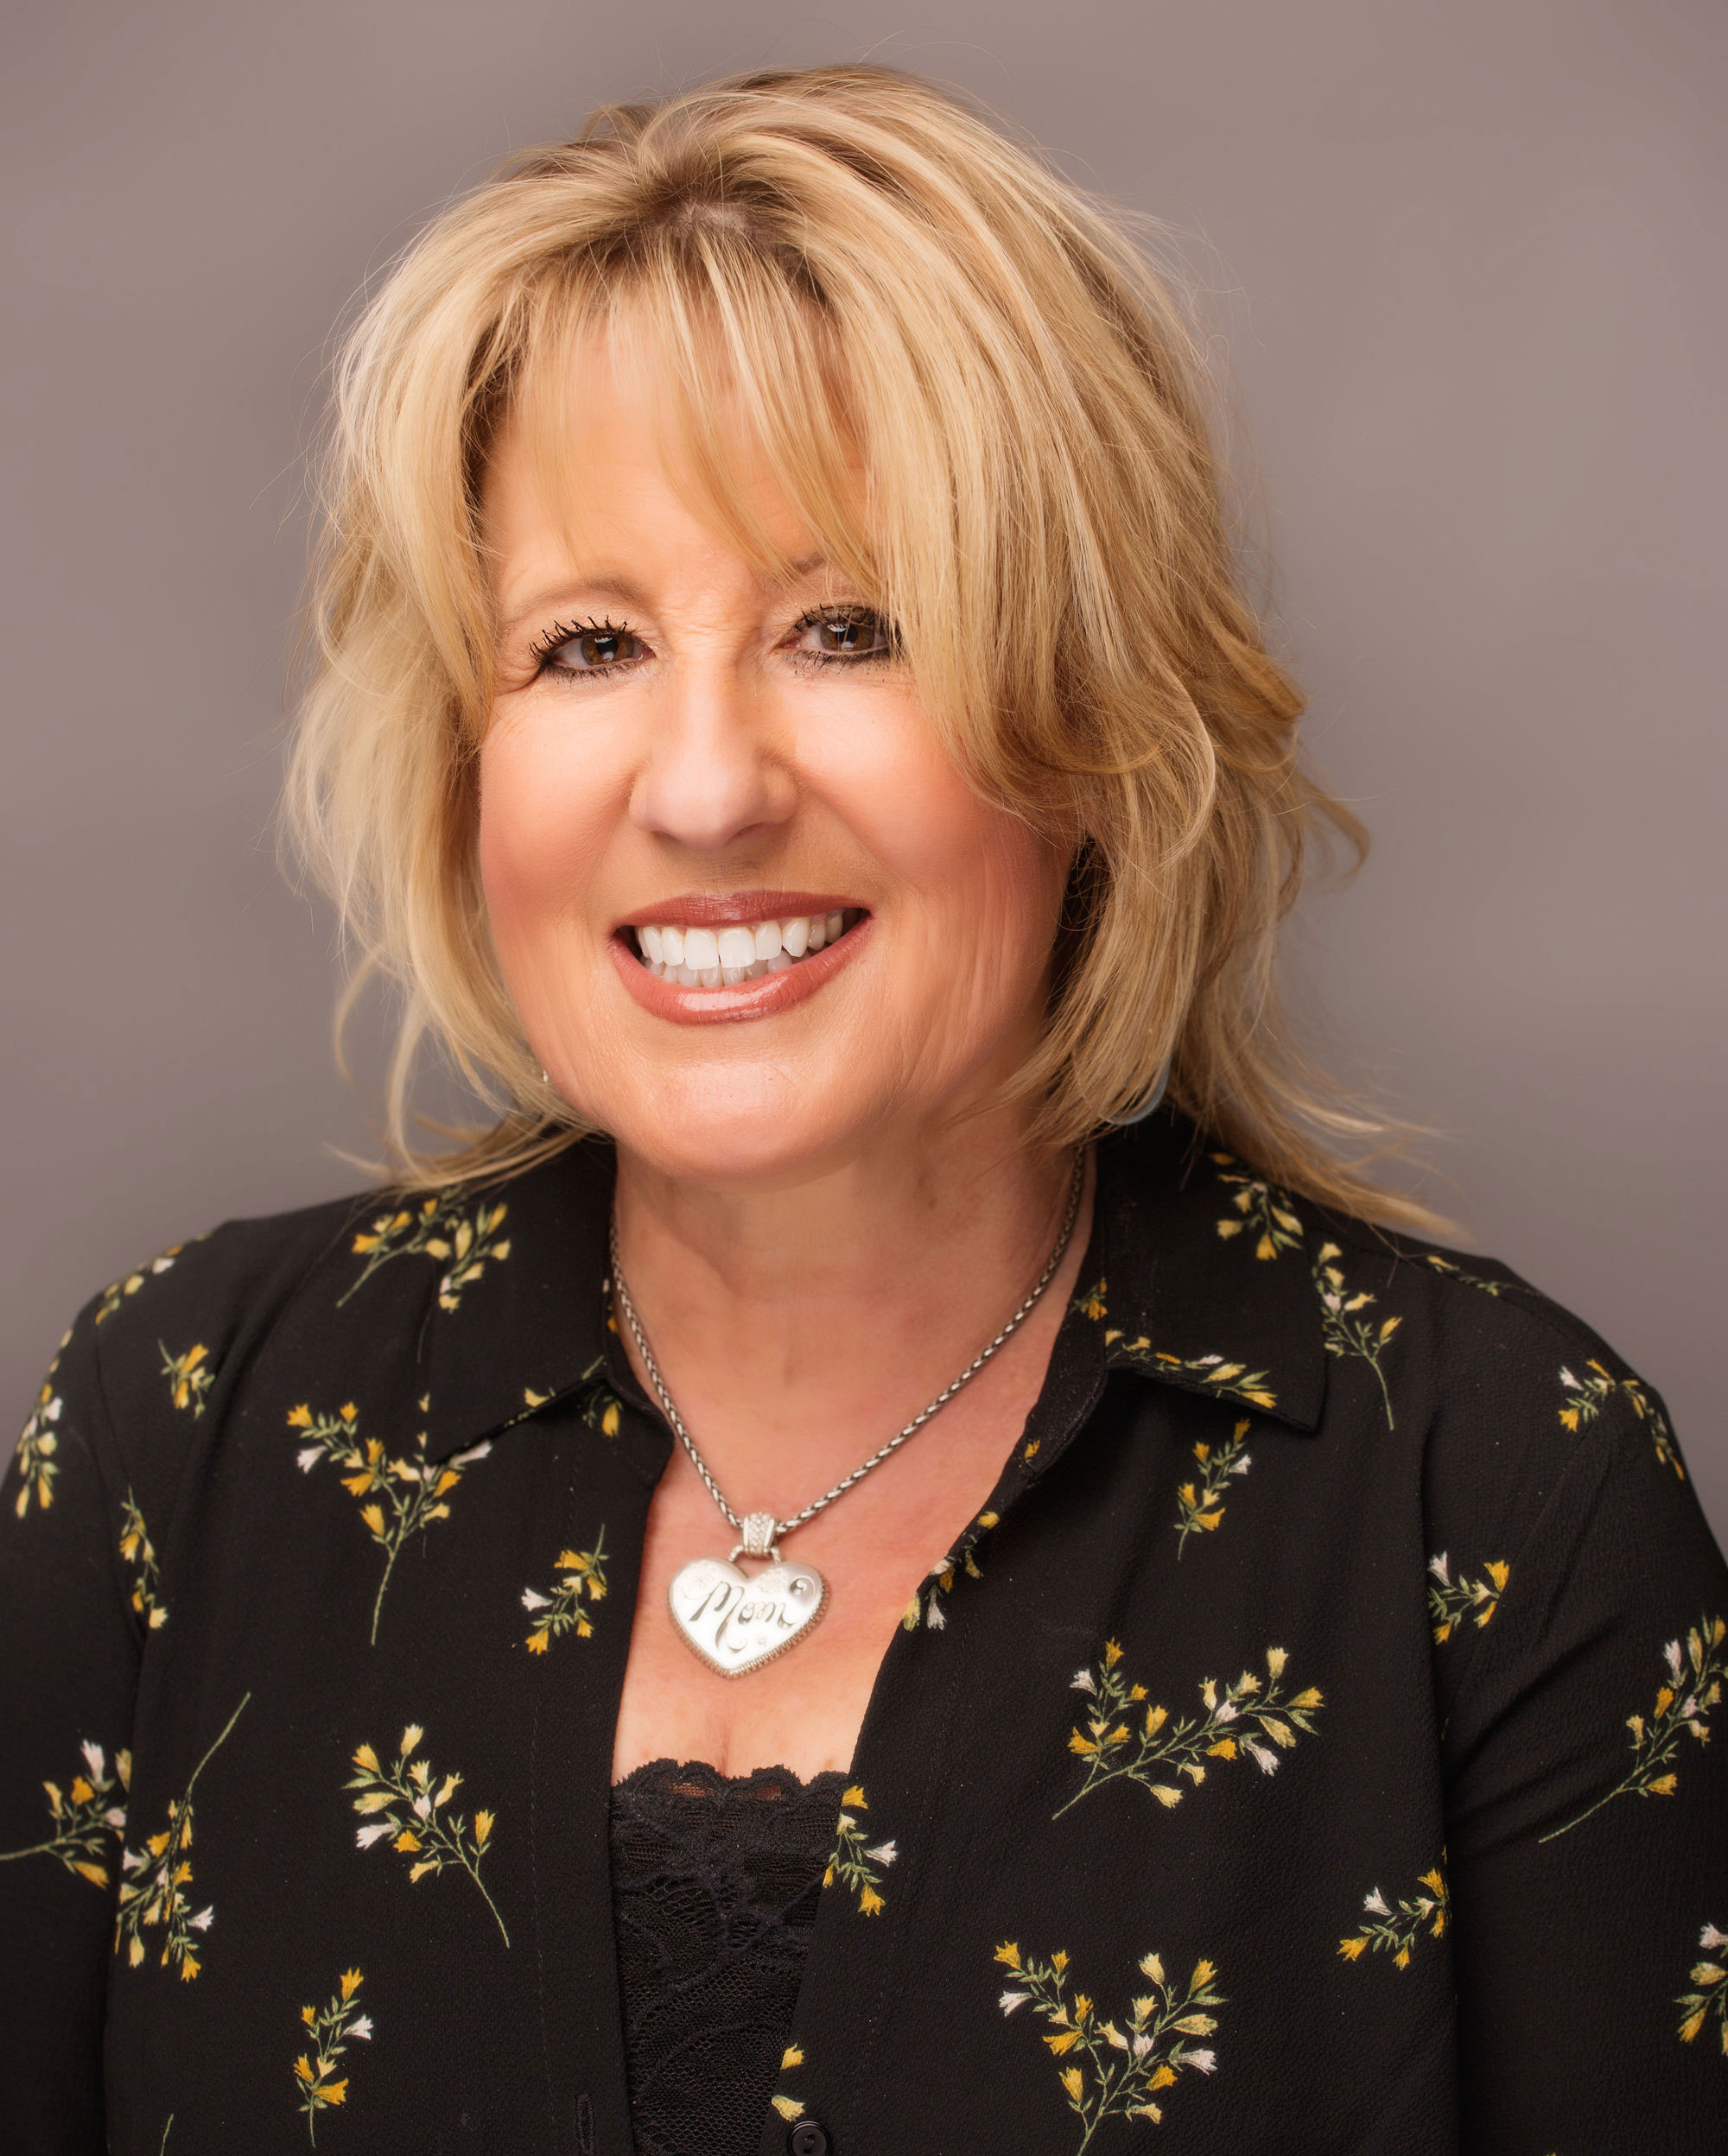 Ann Marie Olson - Vice President of Sales & Marketing